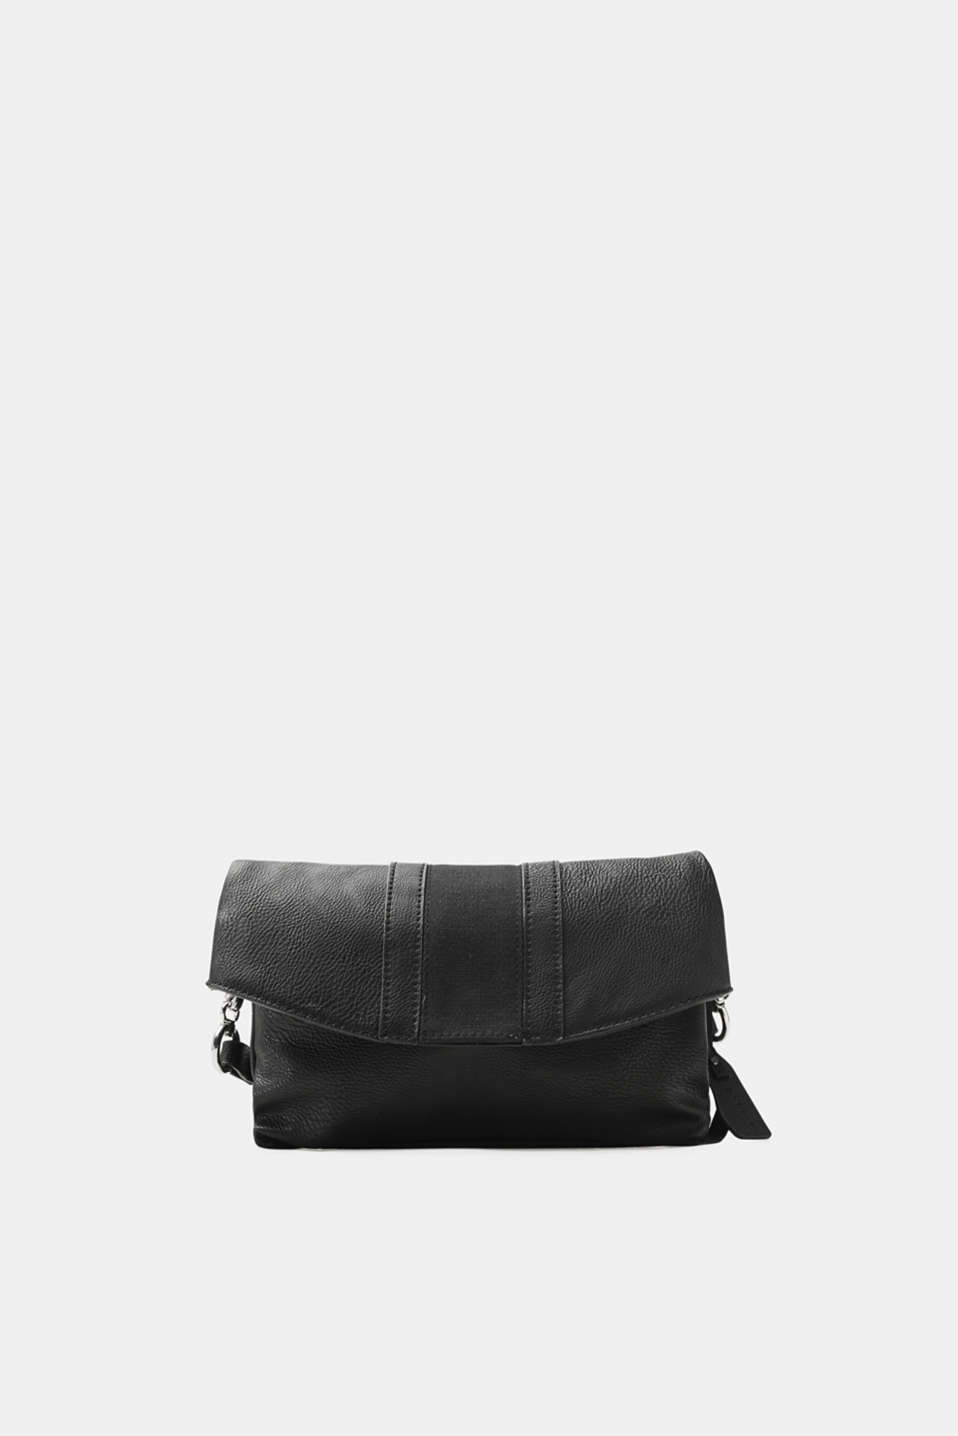 Whether used as a shoulder bag or clutch – the variable shoulder strap makes this bag in authentic faux leather an extremely versatile accessory.